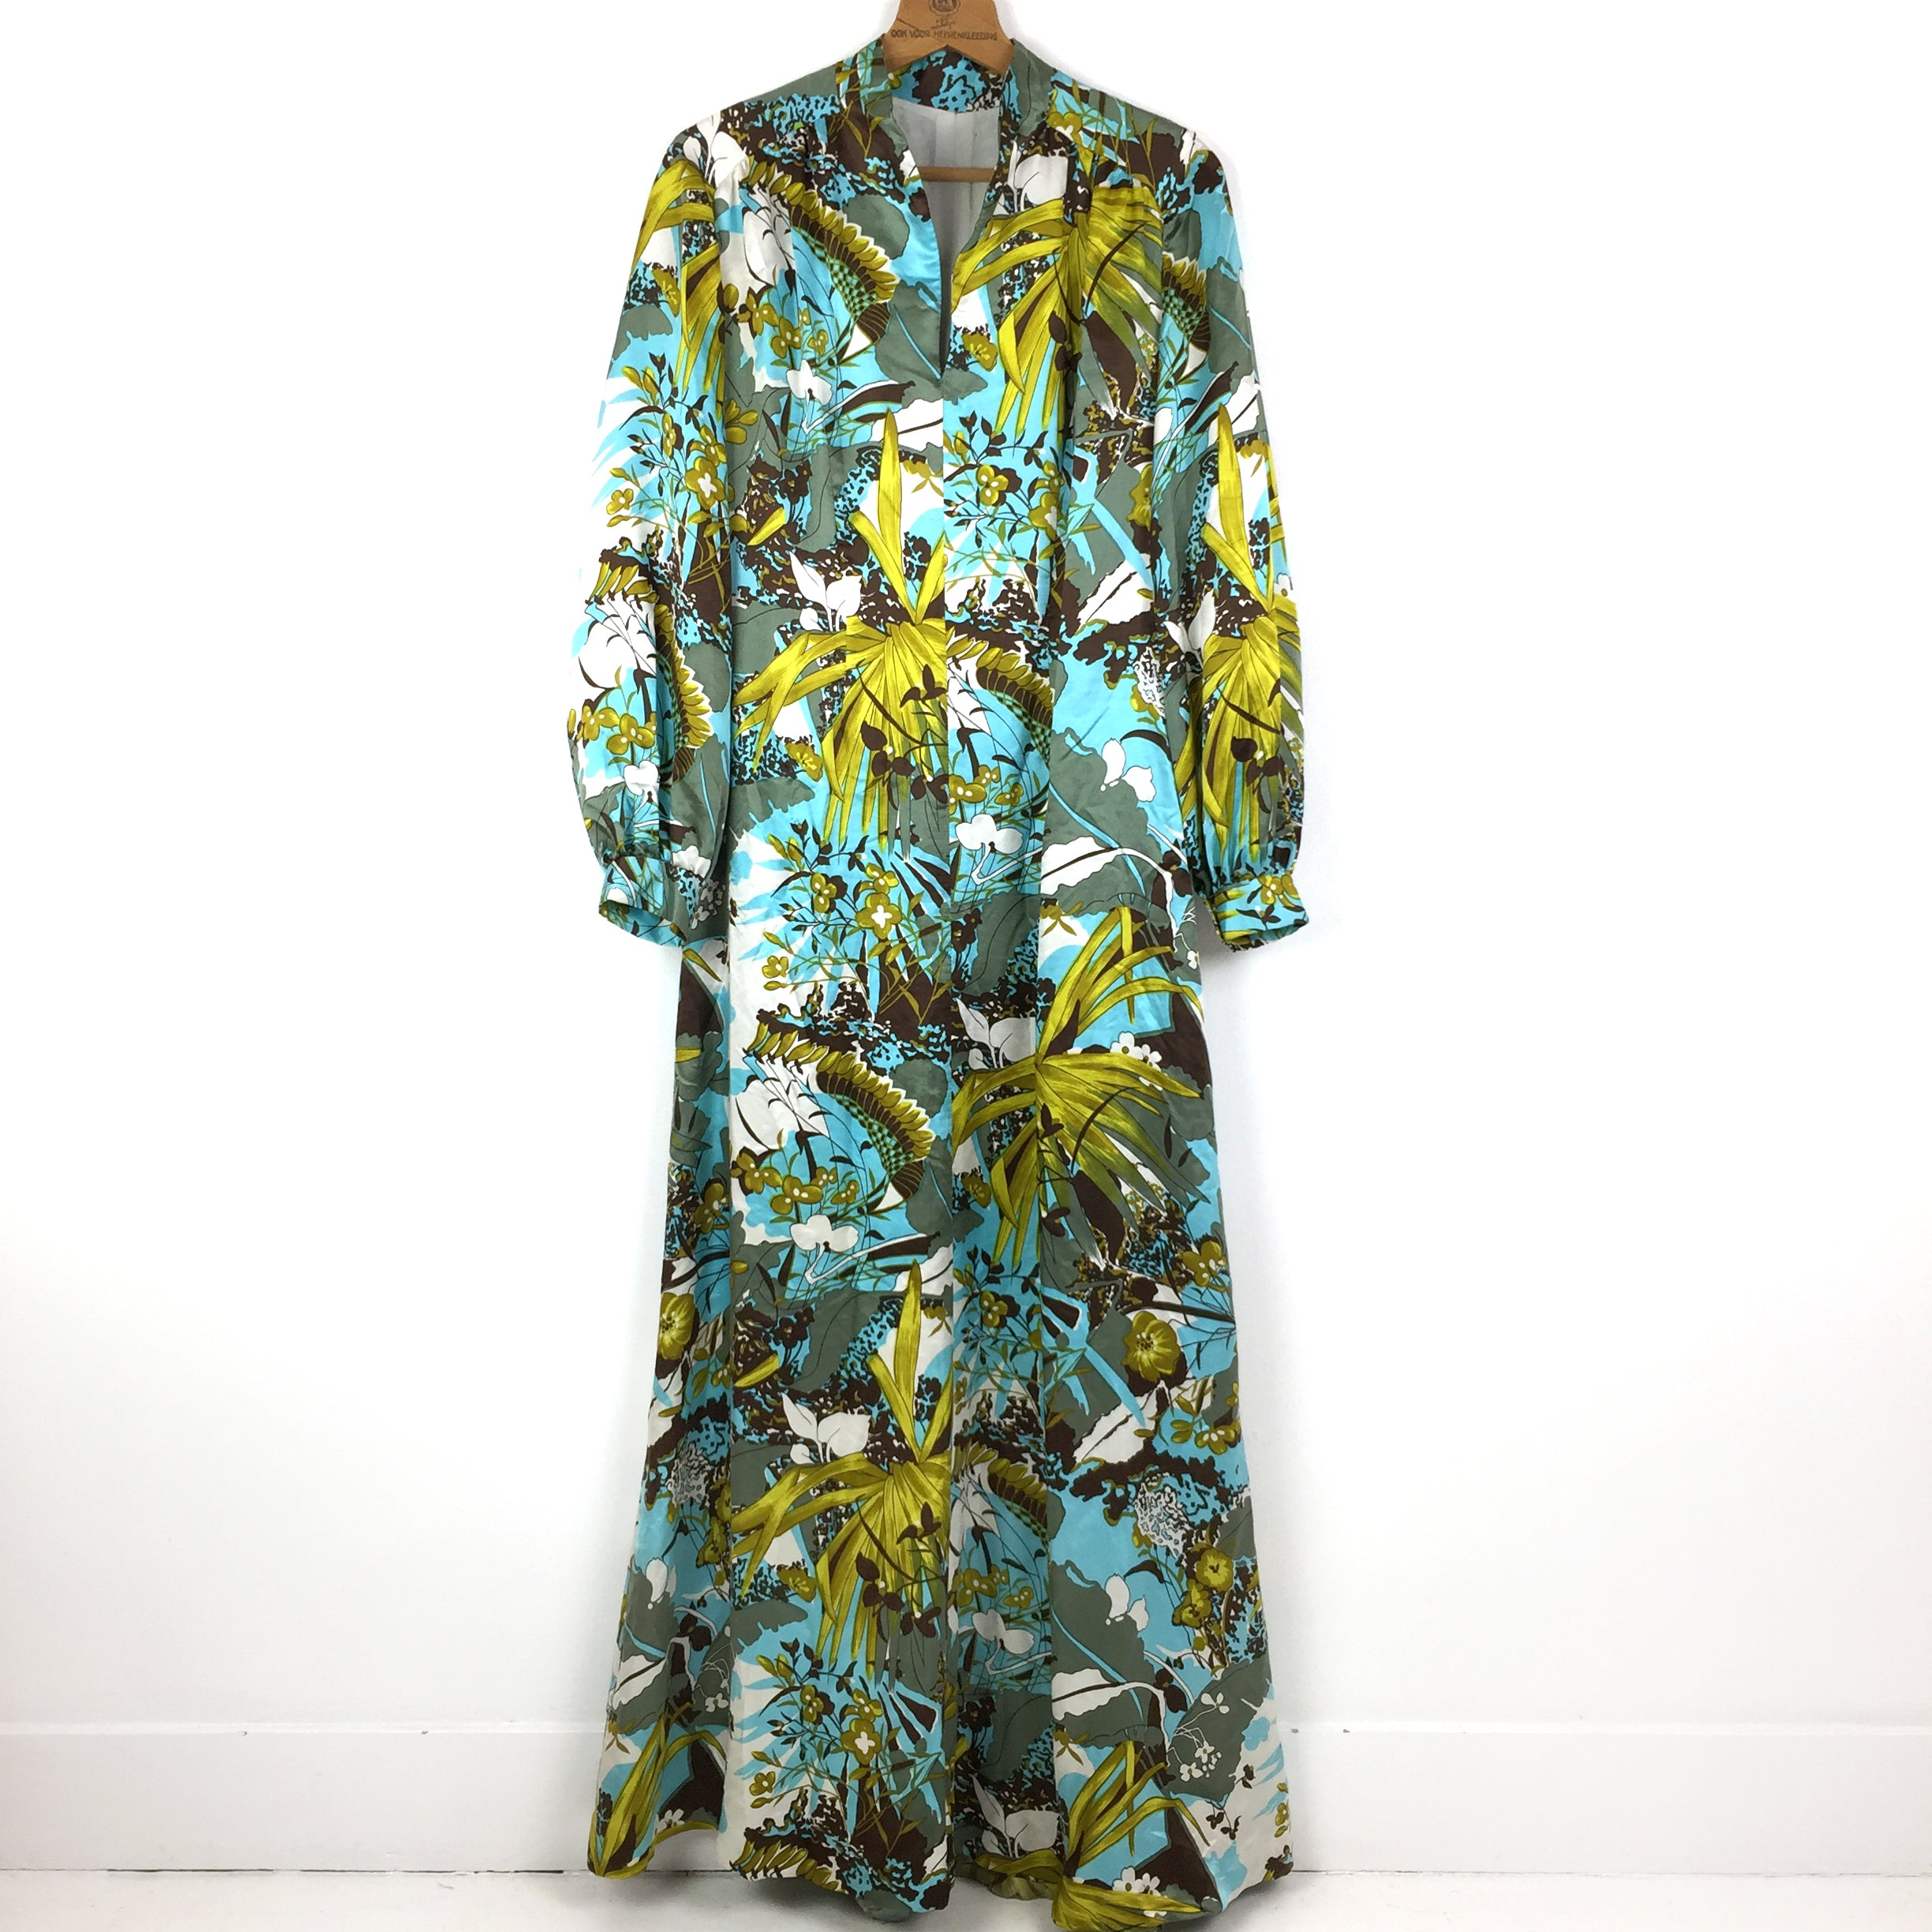 Vintage jaren 70 maxi-dress in aqua tinten, mt 36-38